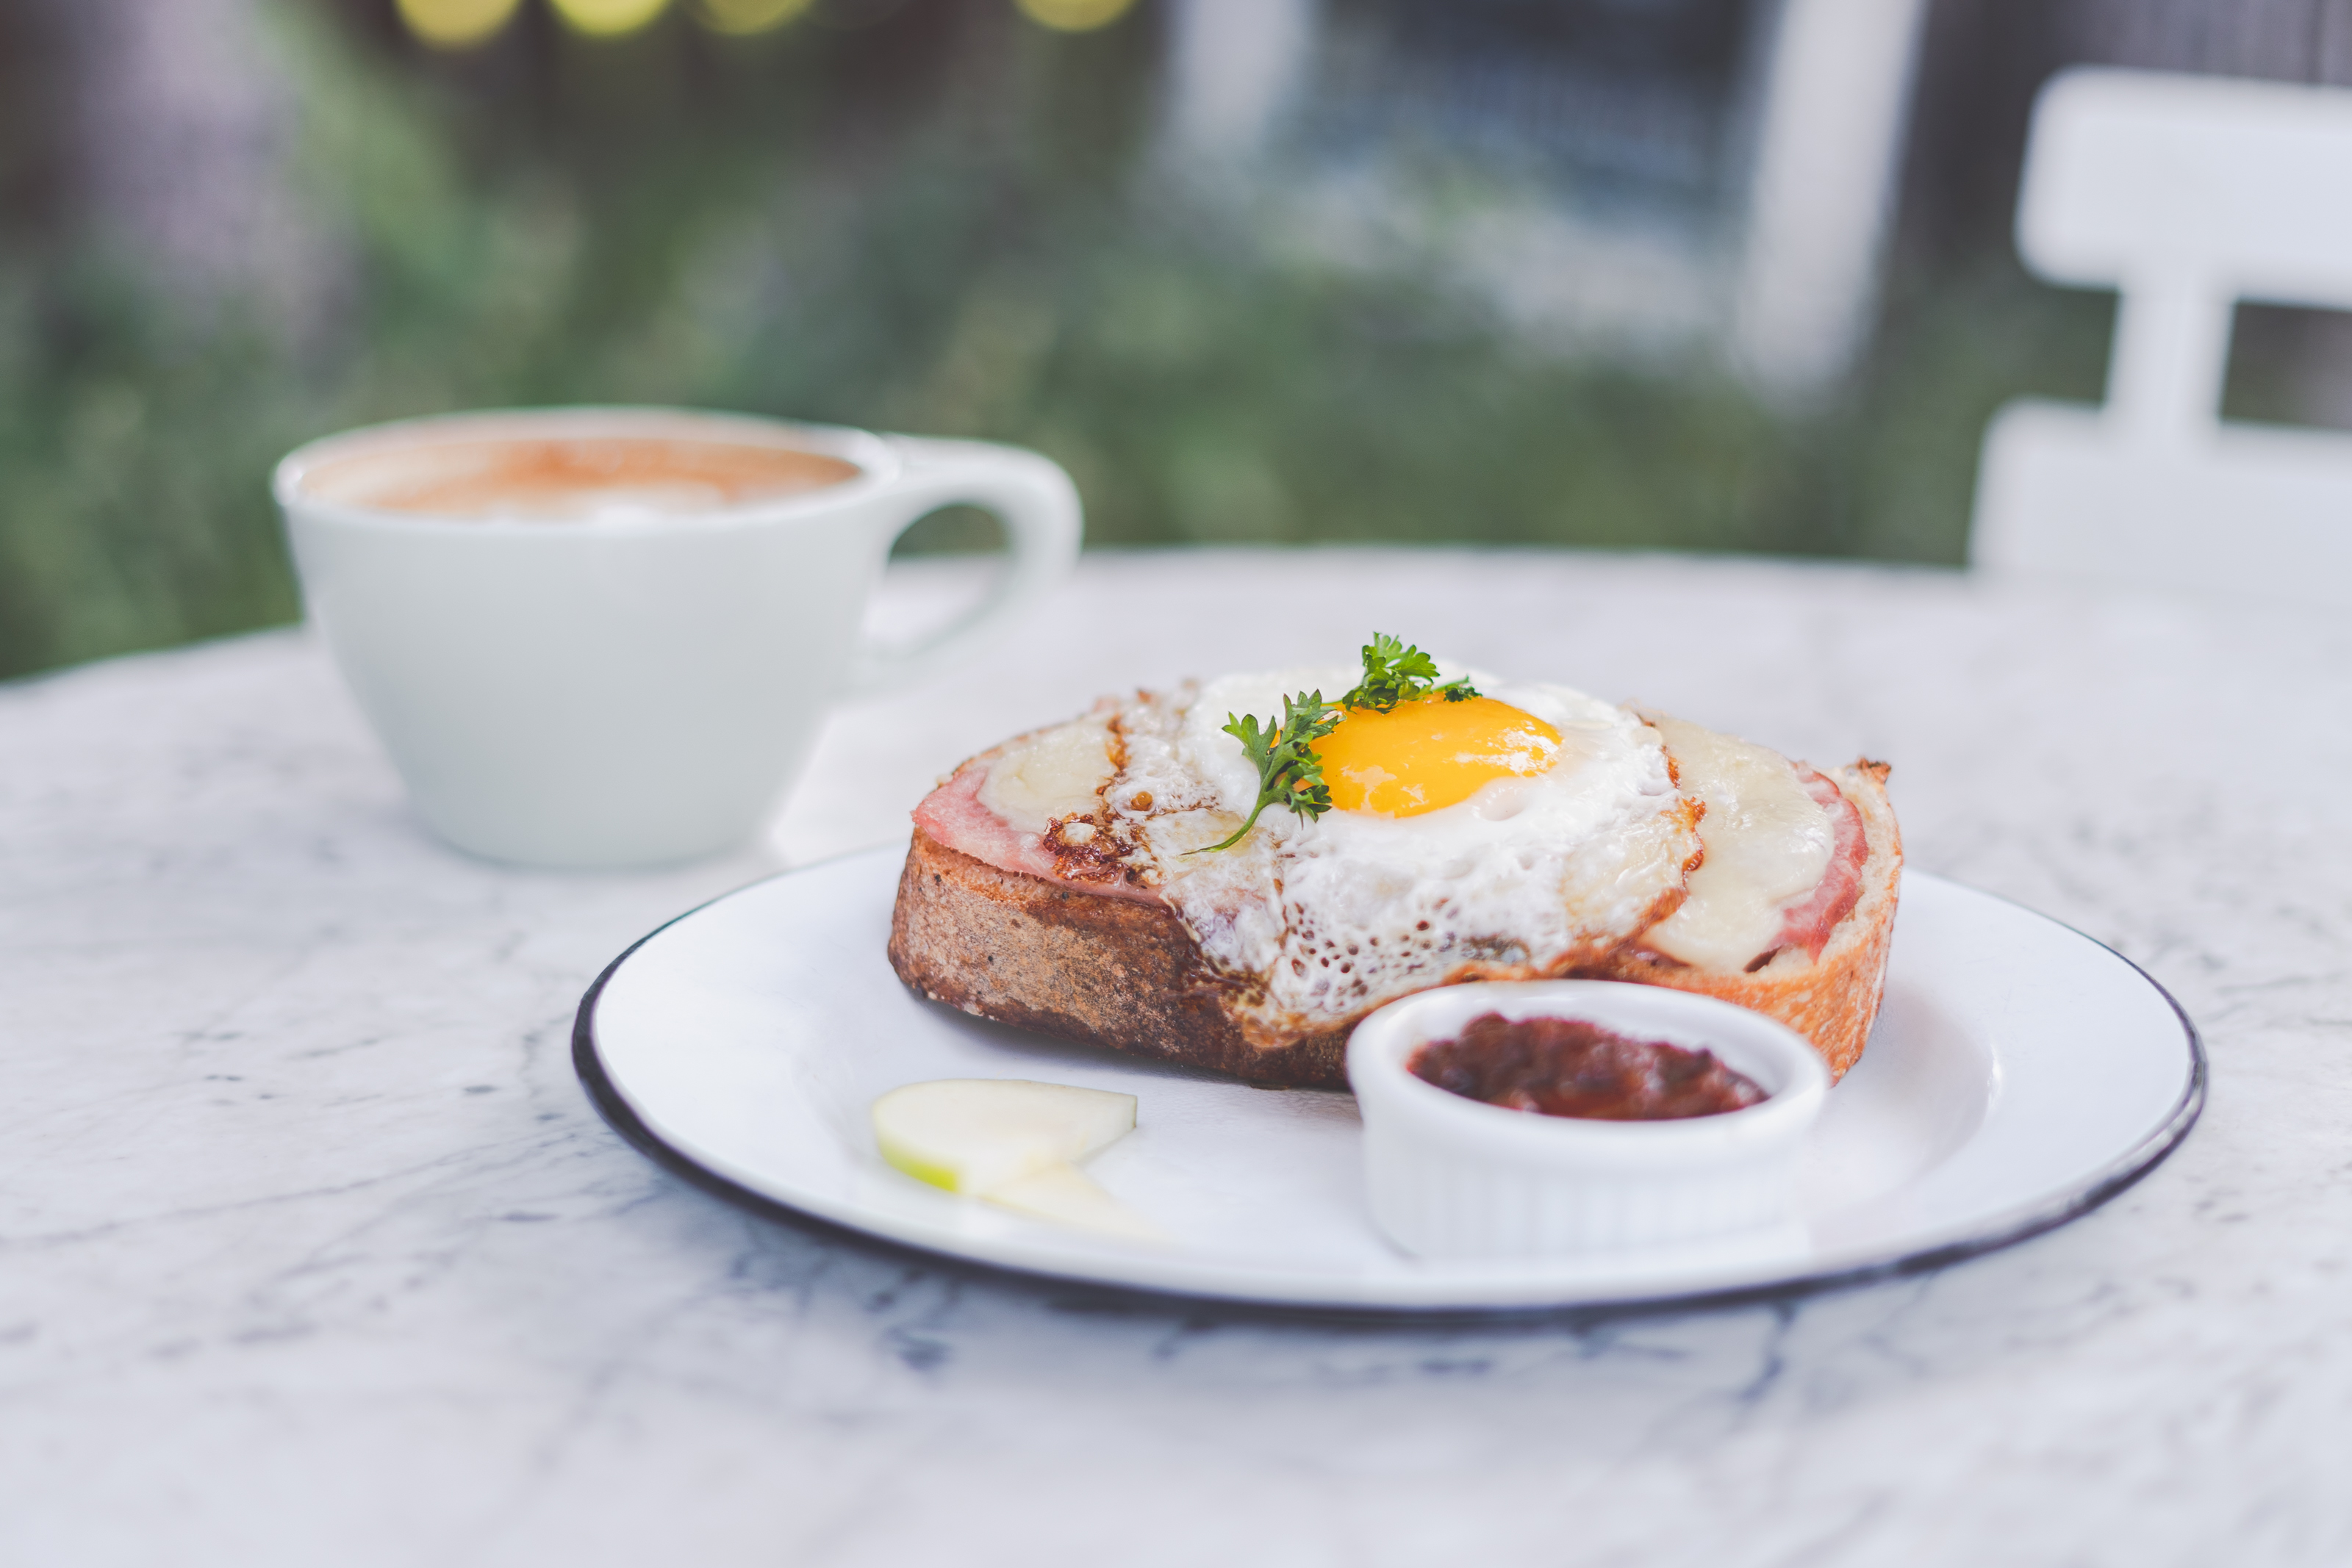 Chic Cafés & Delightful Dishes